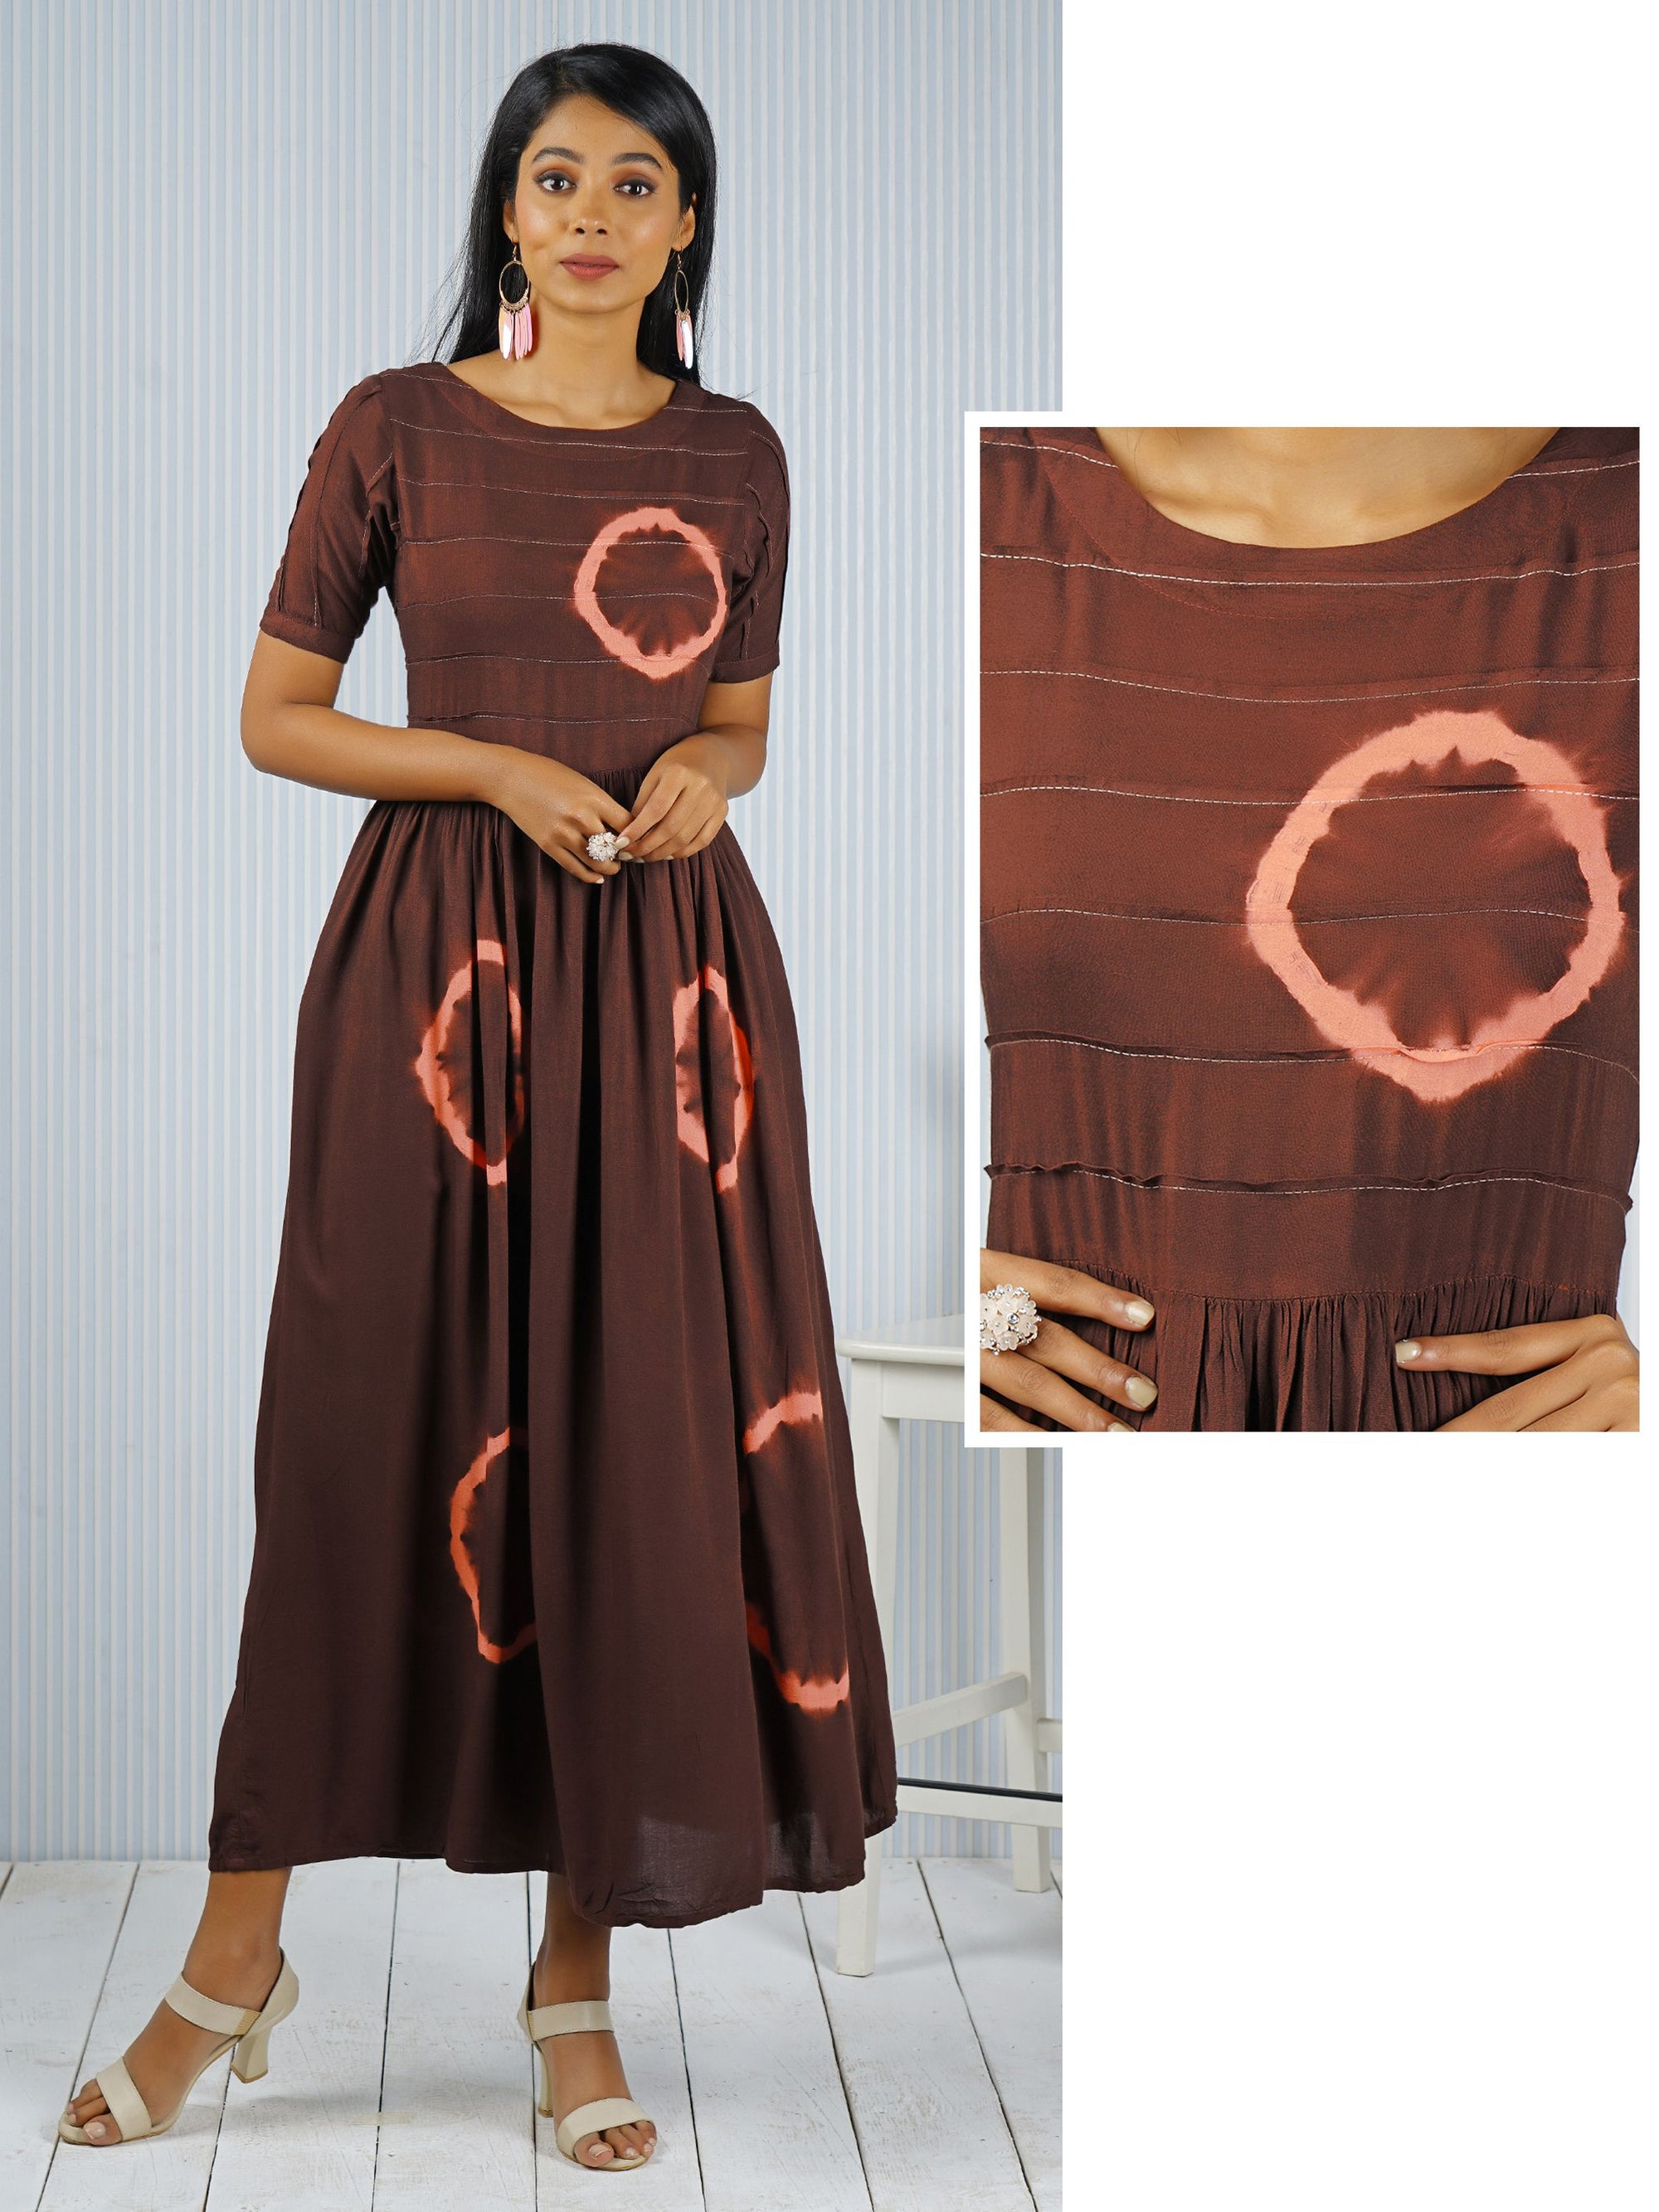 Brown A-Line Maxi Dress With Tie-Dye Effect Design